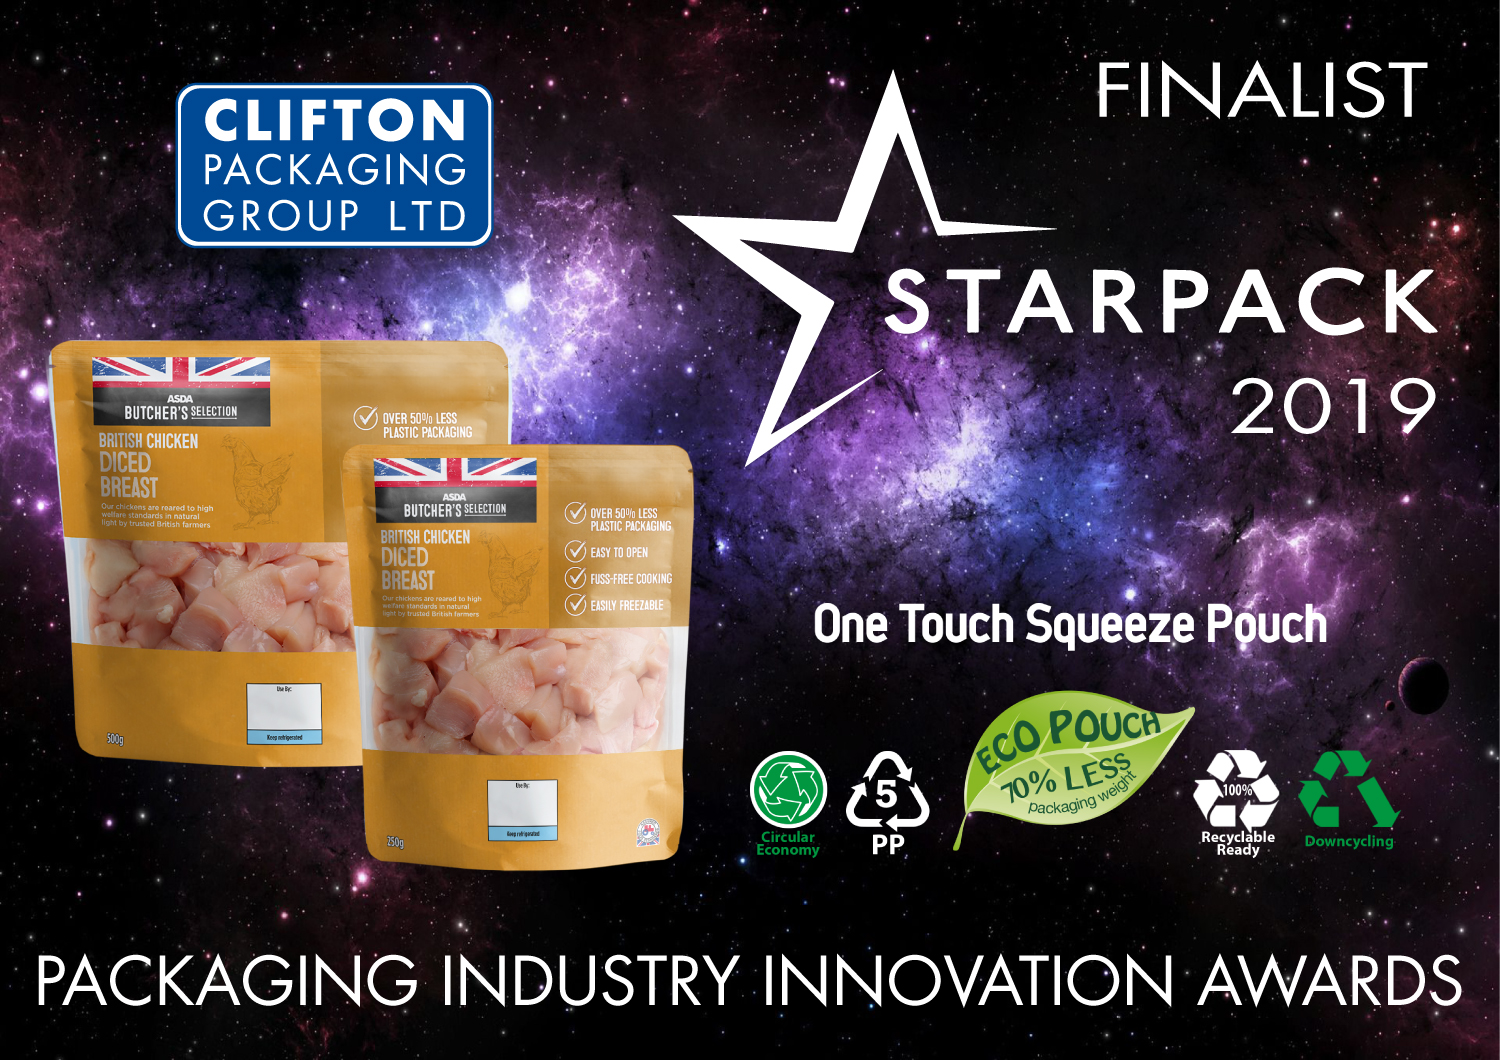 Starpack 2019 Finalist, Clifton Packaging Group